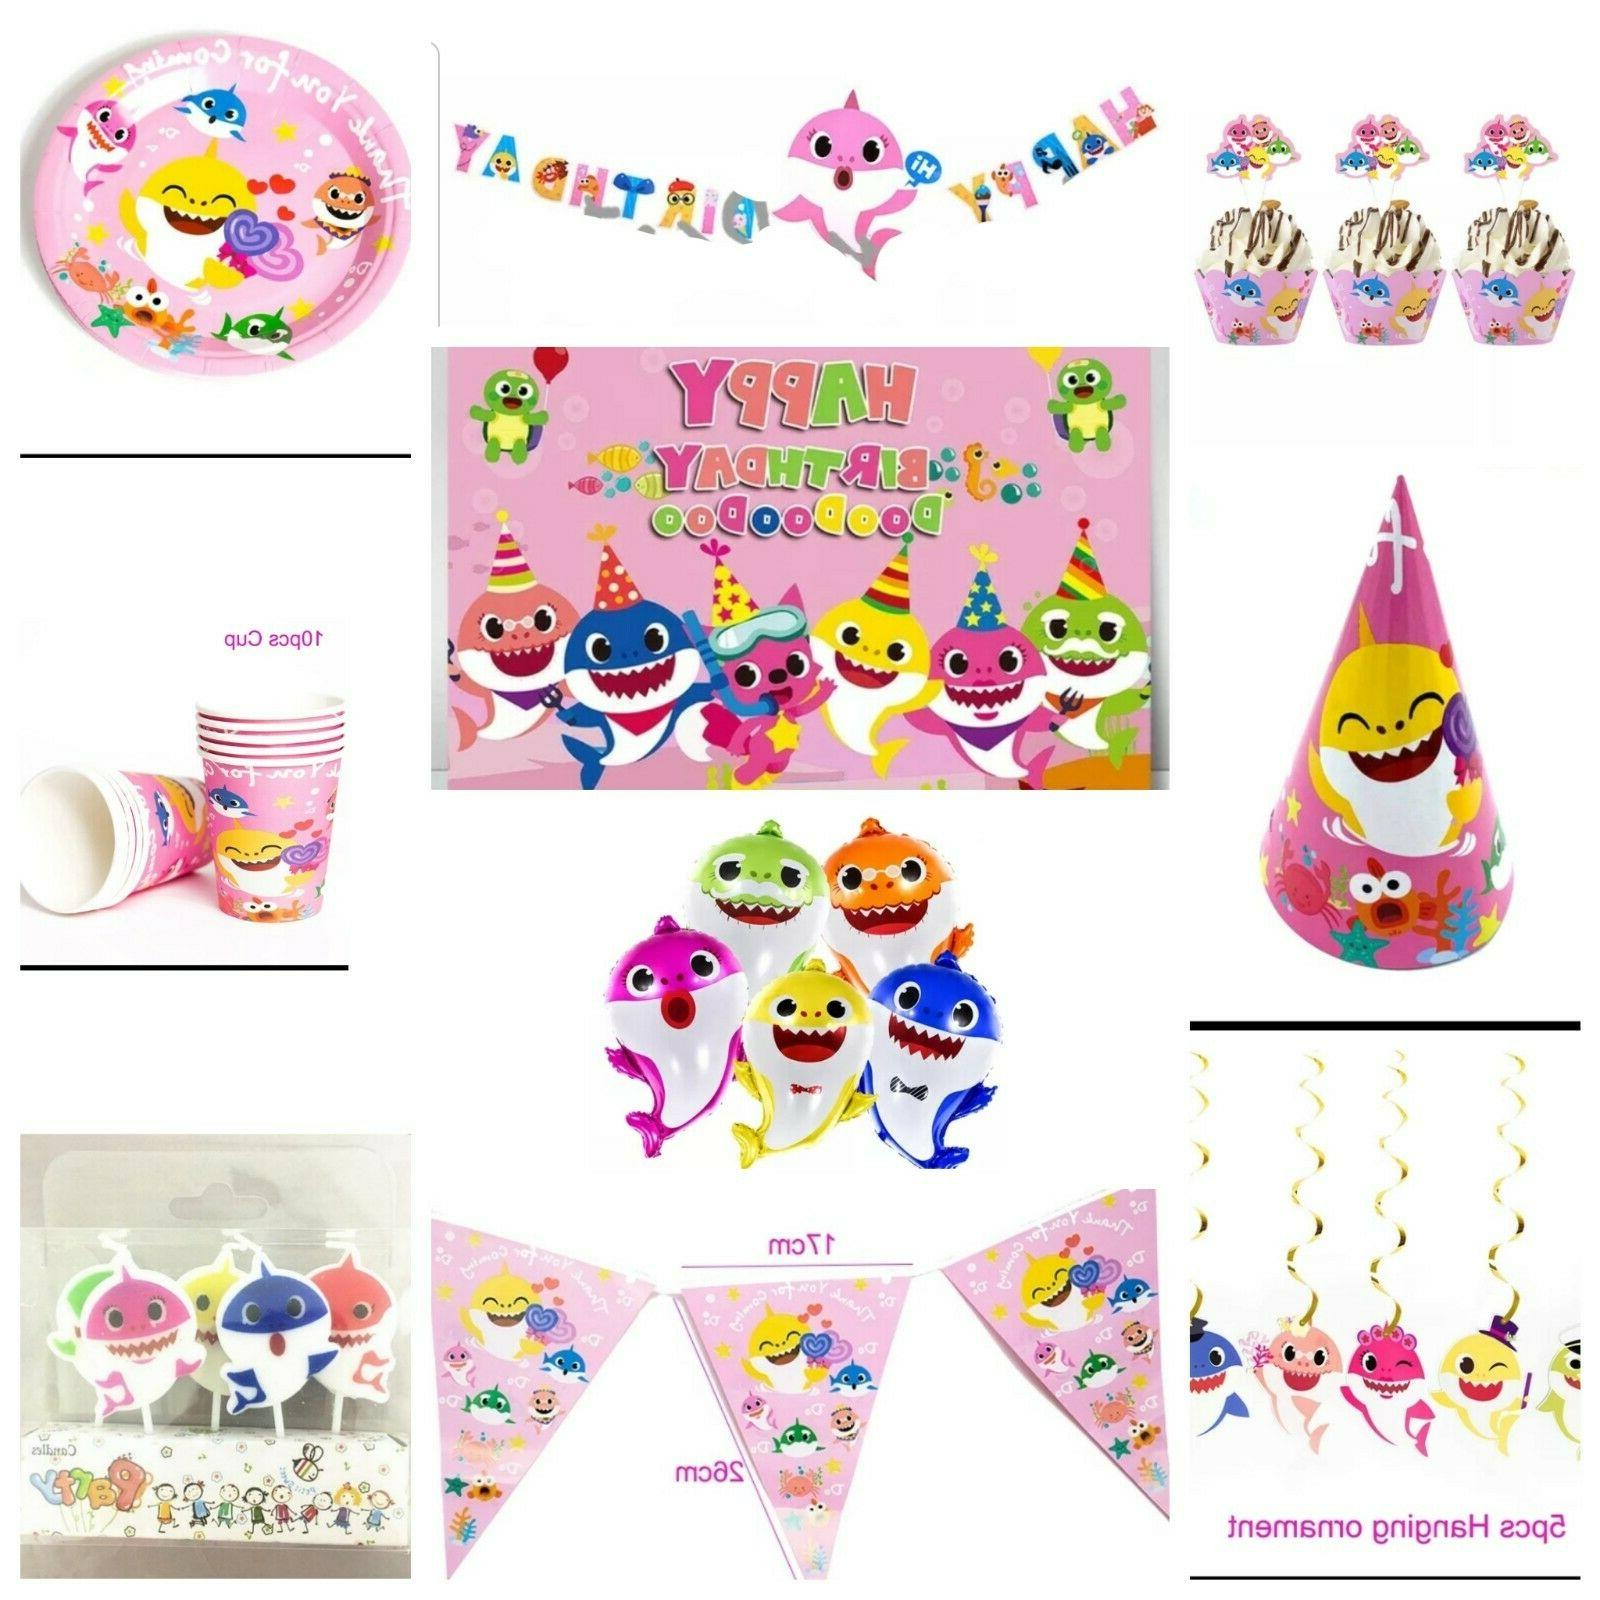 cute baby balloons and decorations pink backdrop